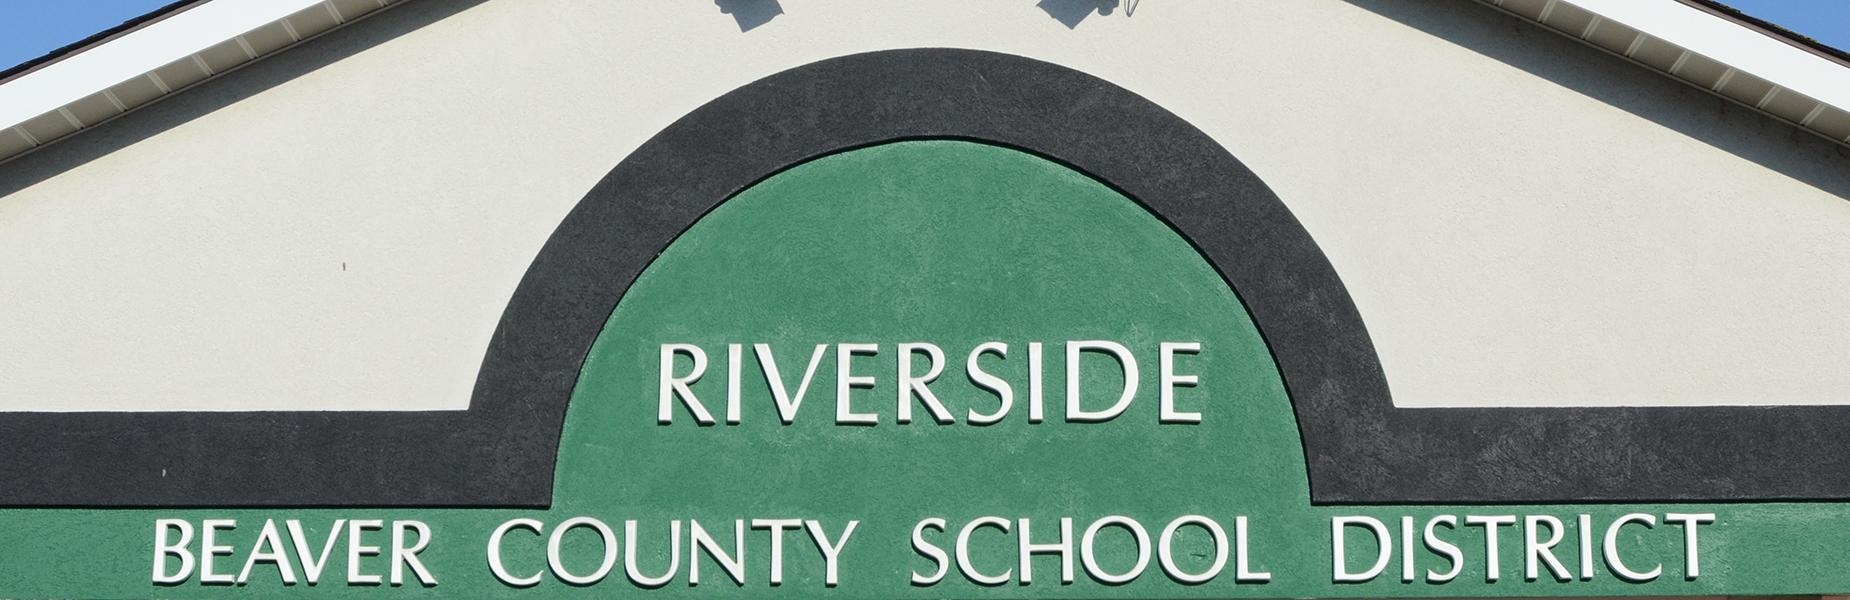 Riverside Beaver County School District